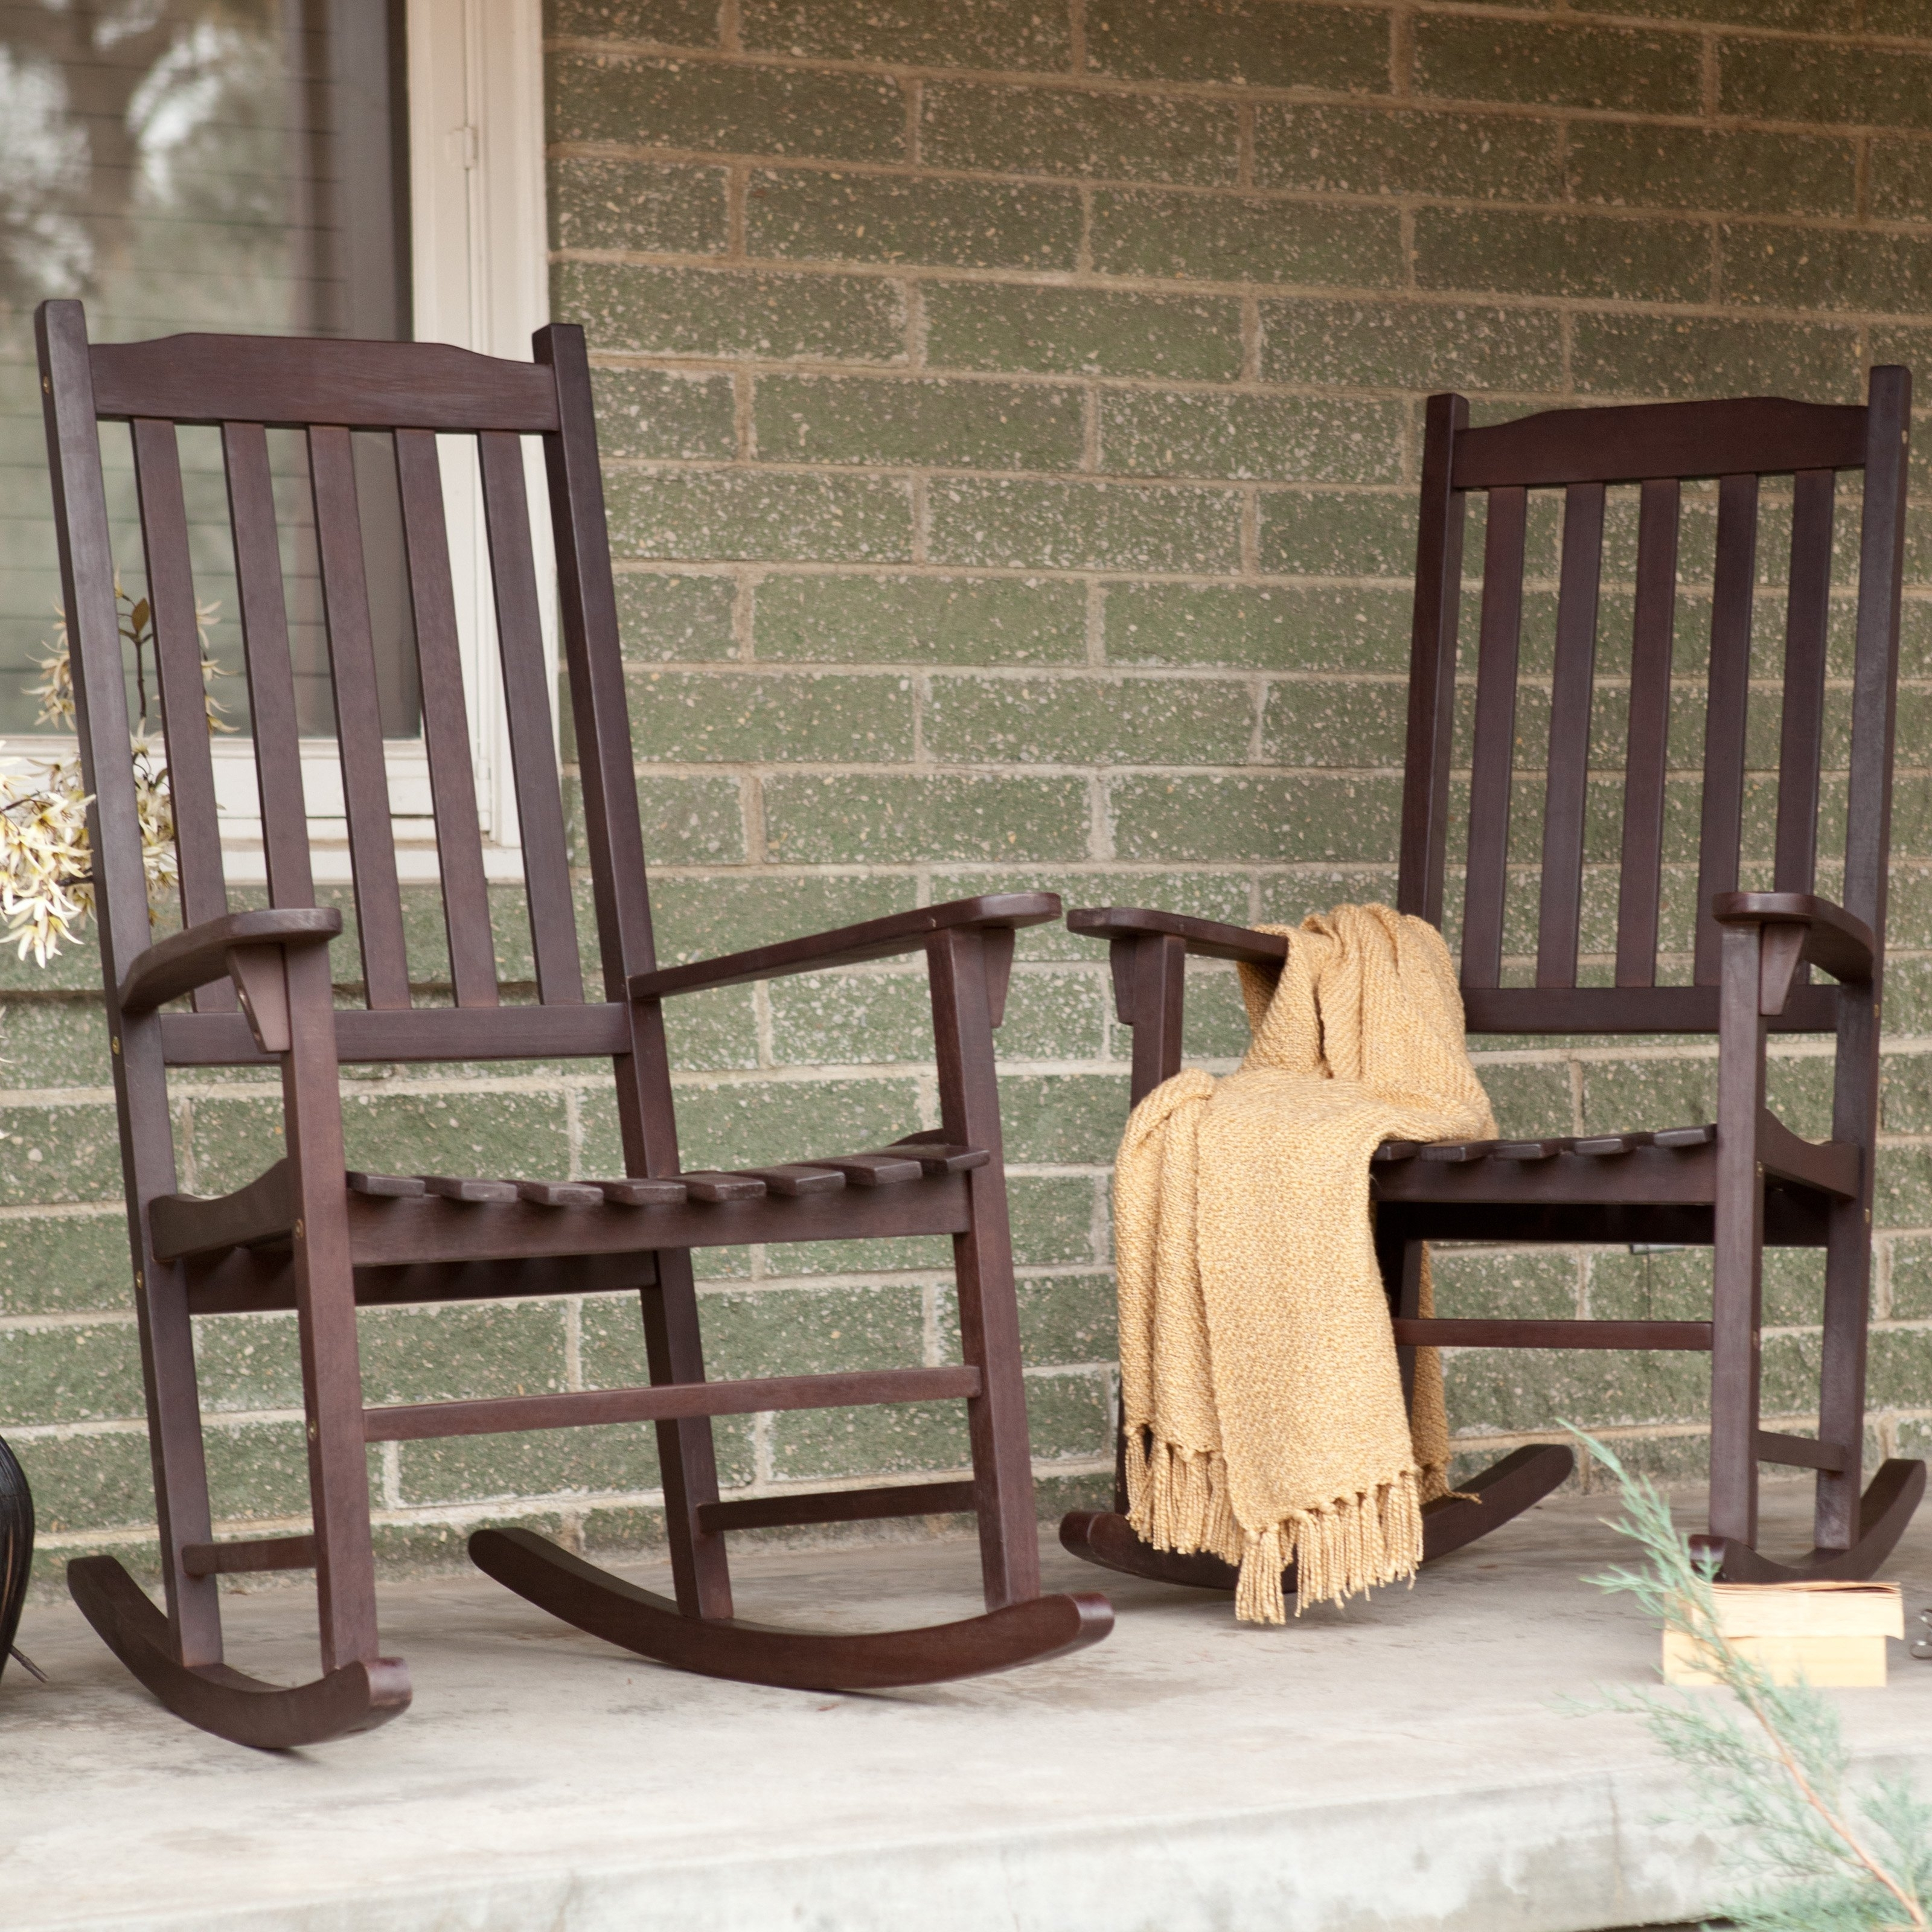 Garden & Patio Furniture : Outdoor Wooden Rocking Chairs New Chairs With Well Known Rocking Chair Outdoor Wooden (View 7 of 20)